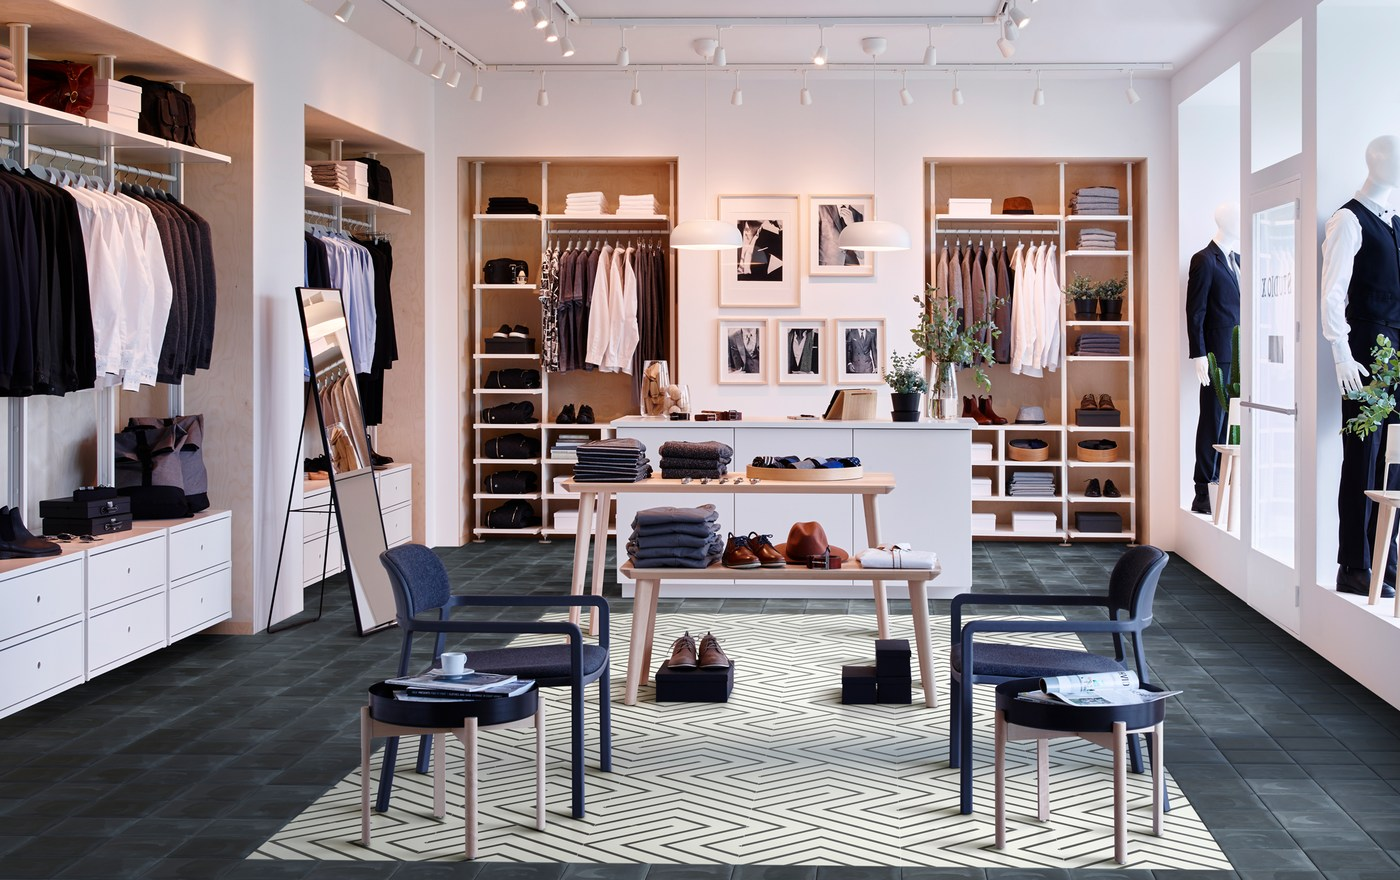 A men's clothing store with four IKEA ELVARLI storage units around the room, with two LISABO light wood tables in the centre.